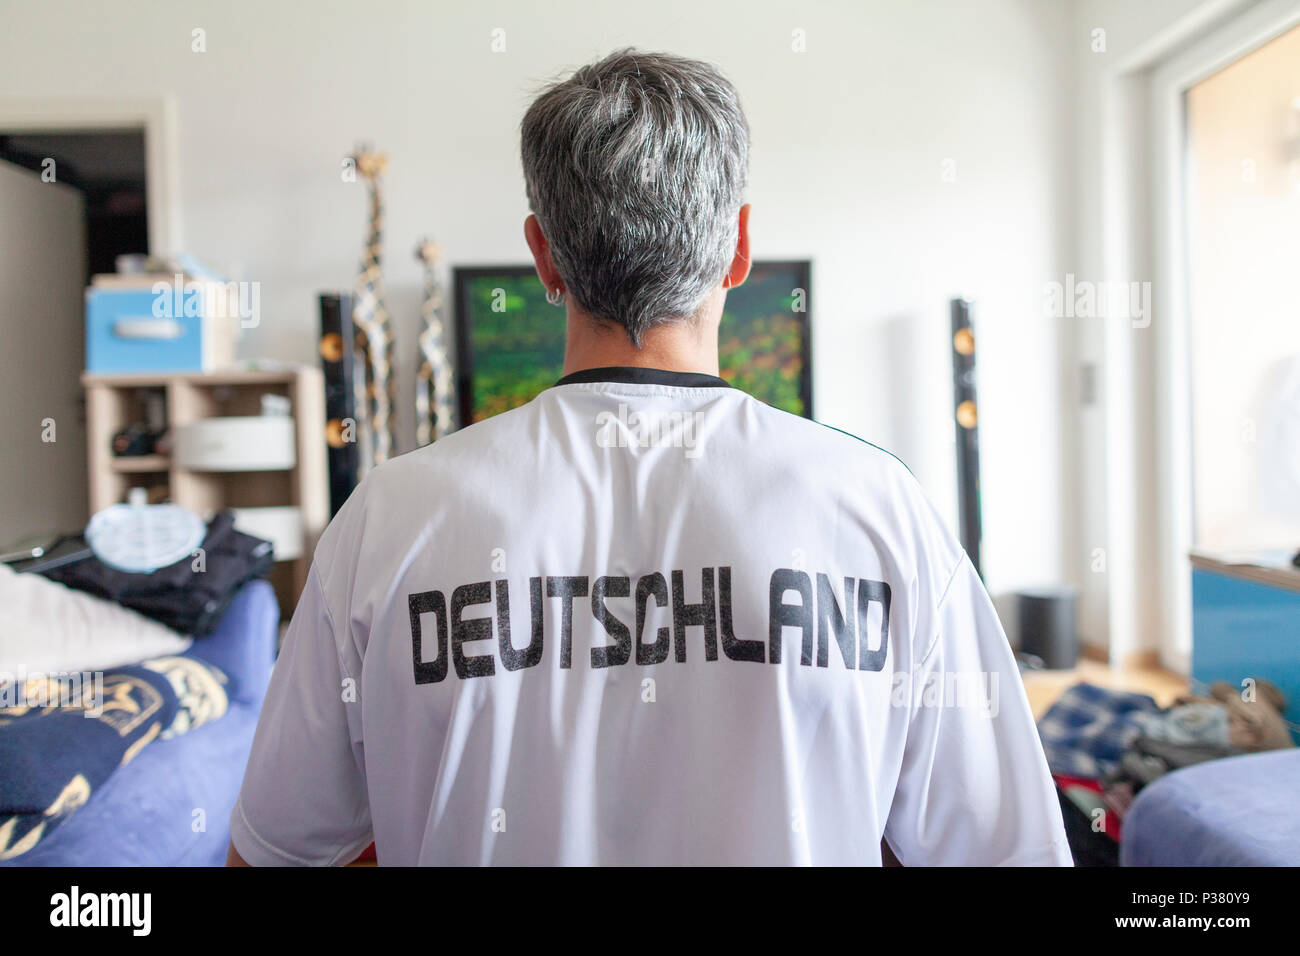 German fan sits in a Deutschland ( Germany ) jersey in front of a television - Stock Image